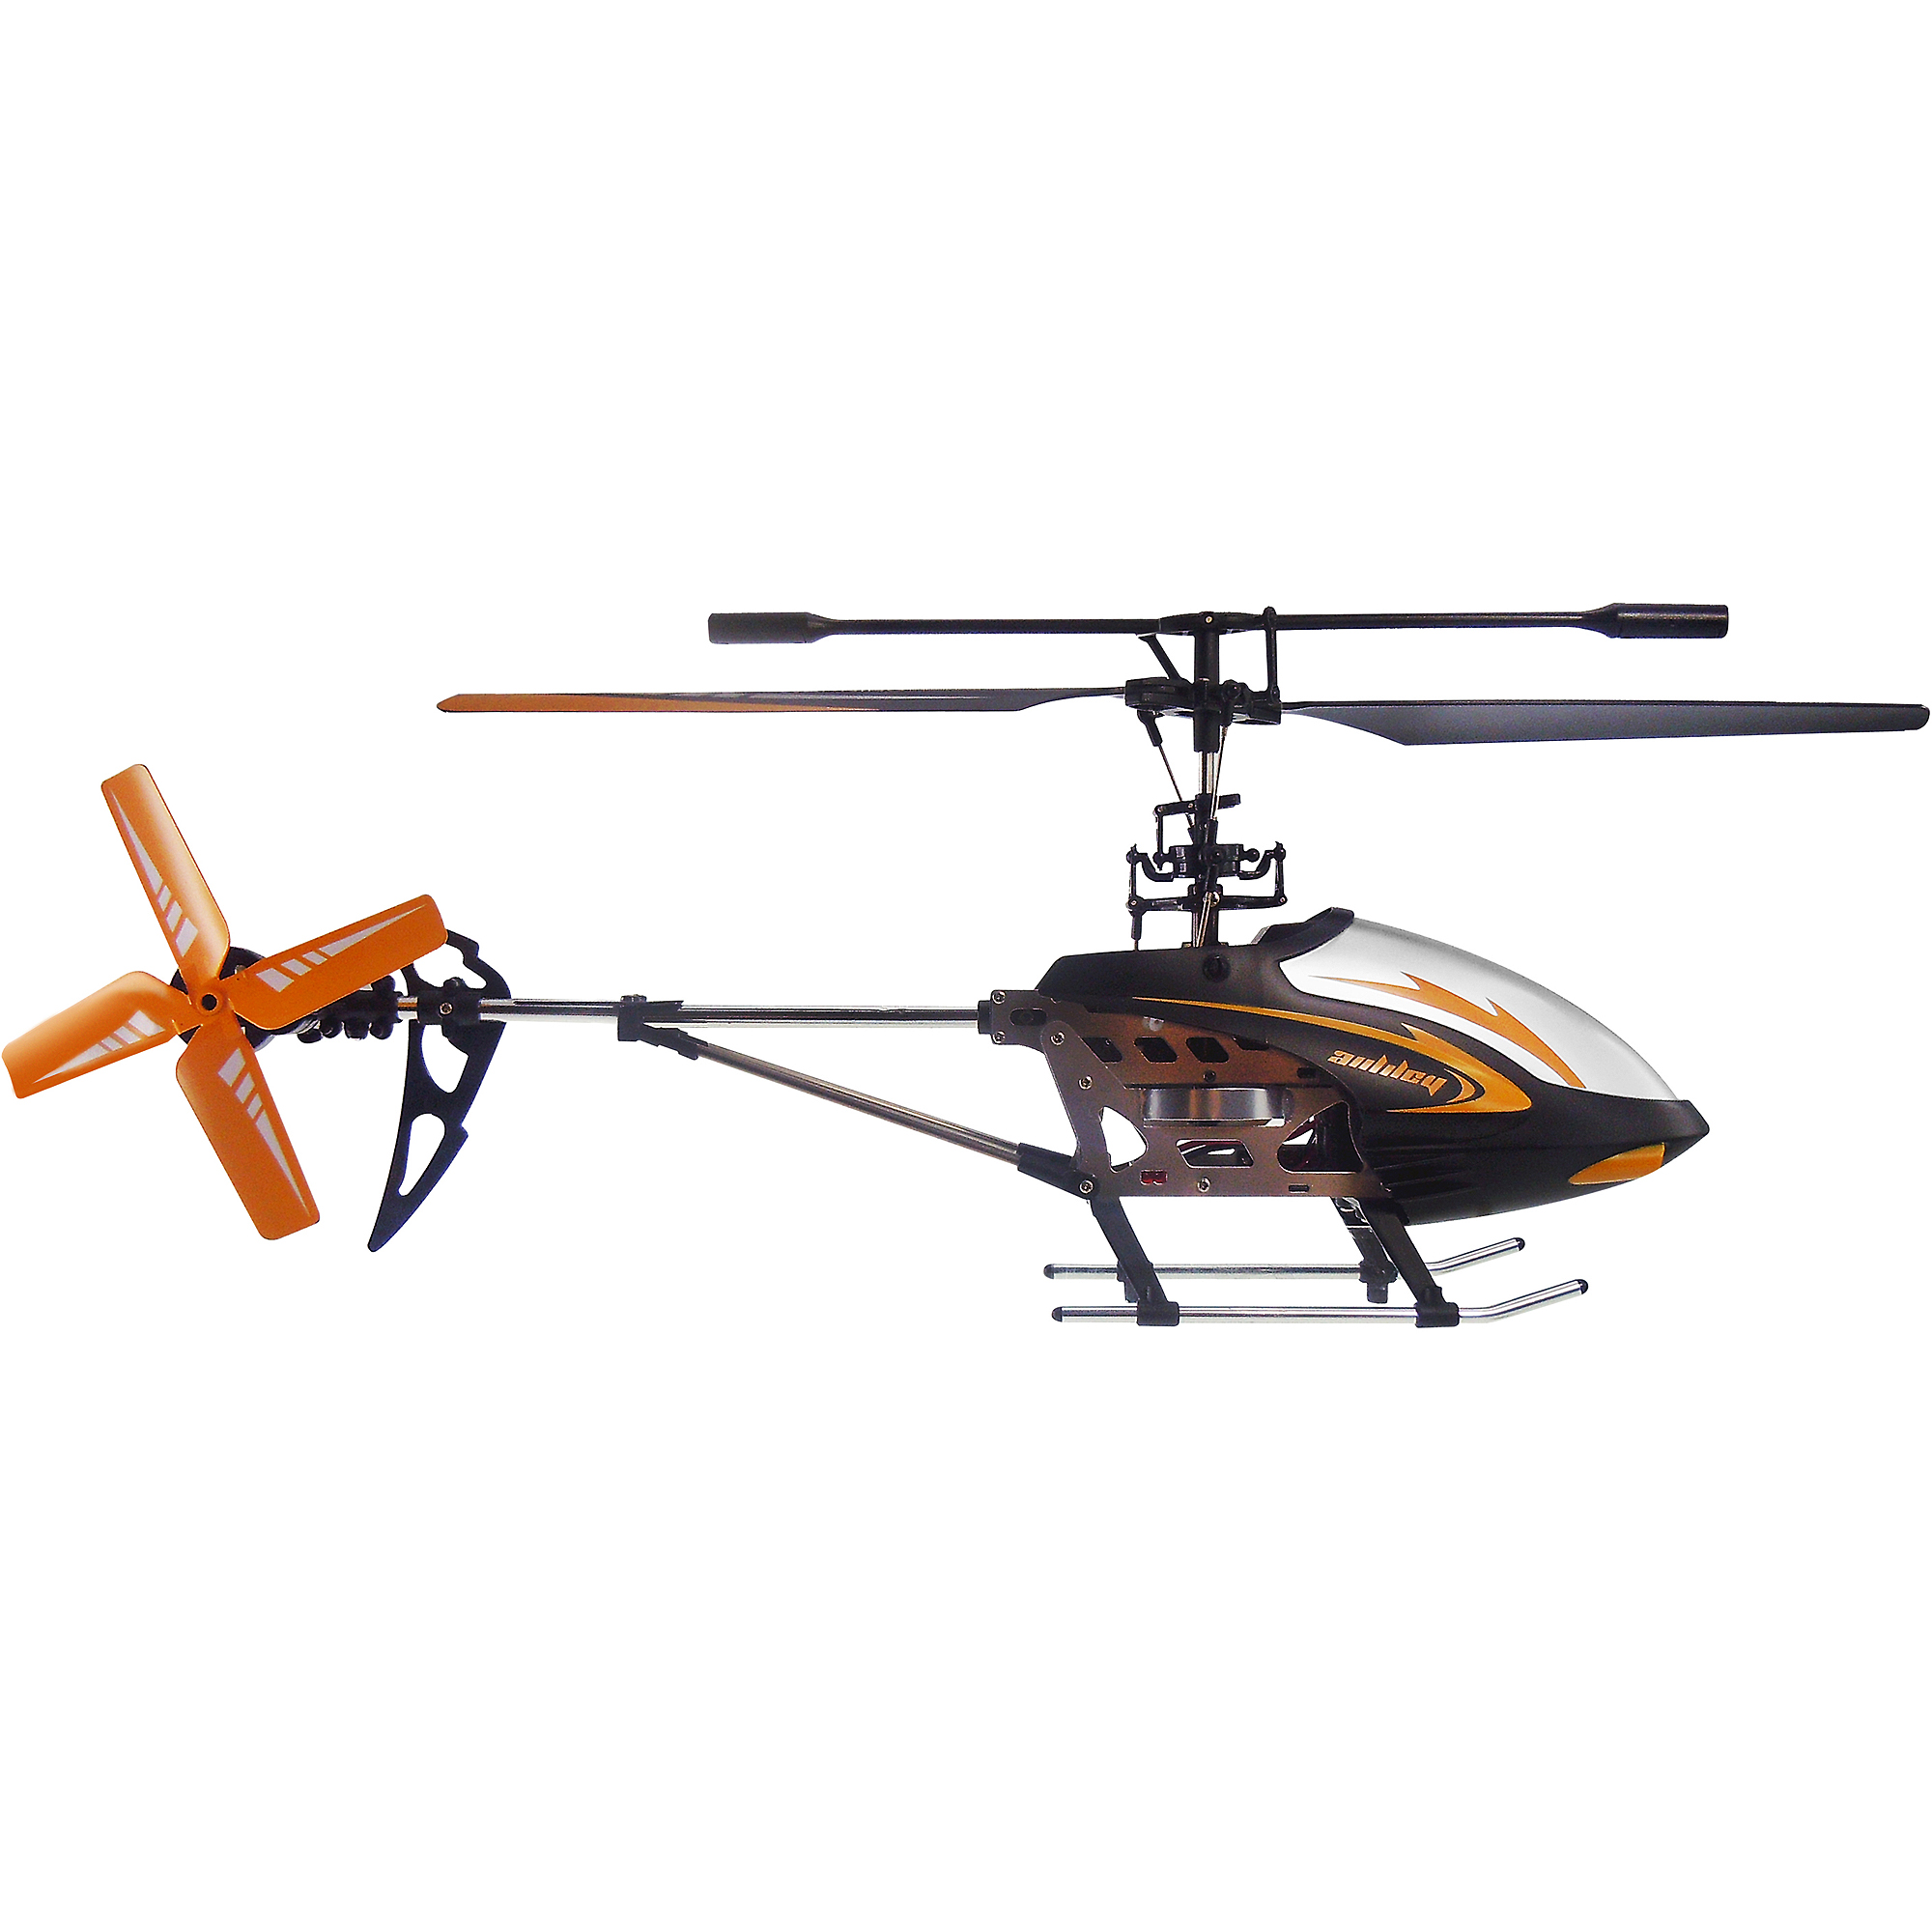 Auldey RC Phoenix 4-Channel Gyro Helicopter, Black